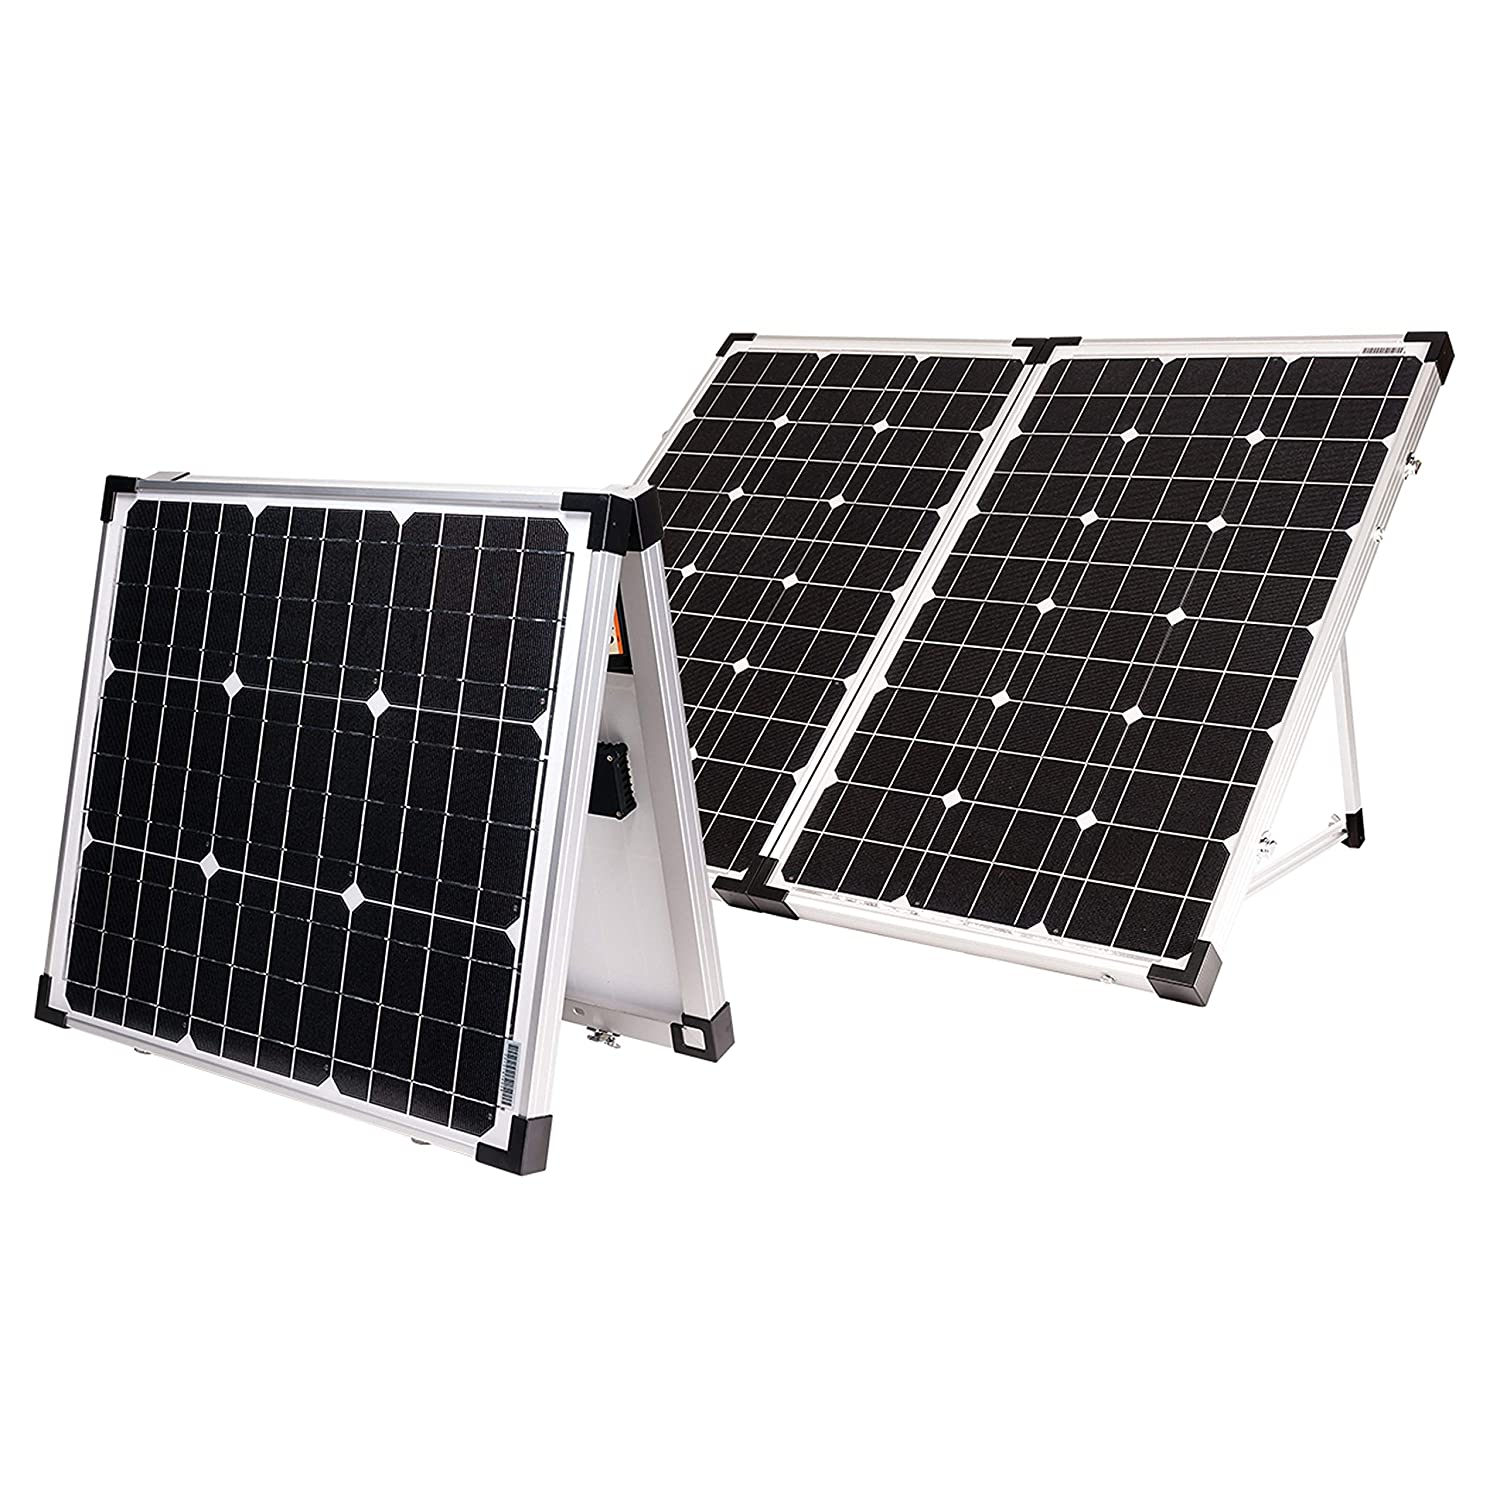 Top 10 Best Chinese Solar Panels Reviews in 2021 8